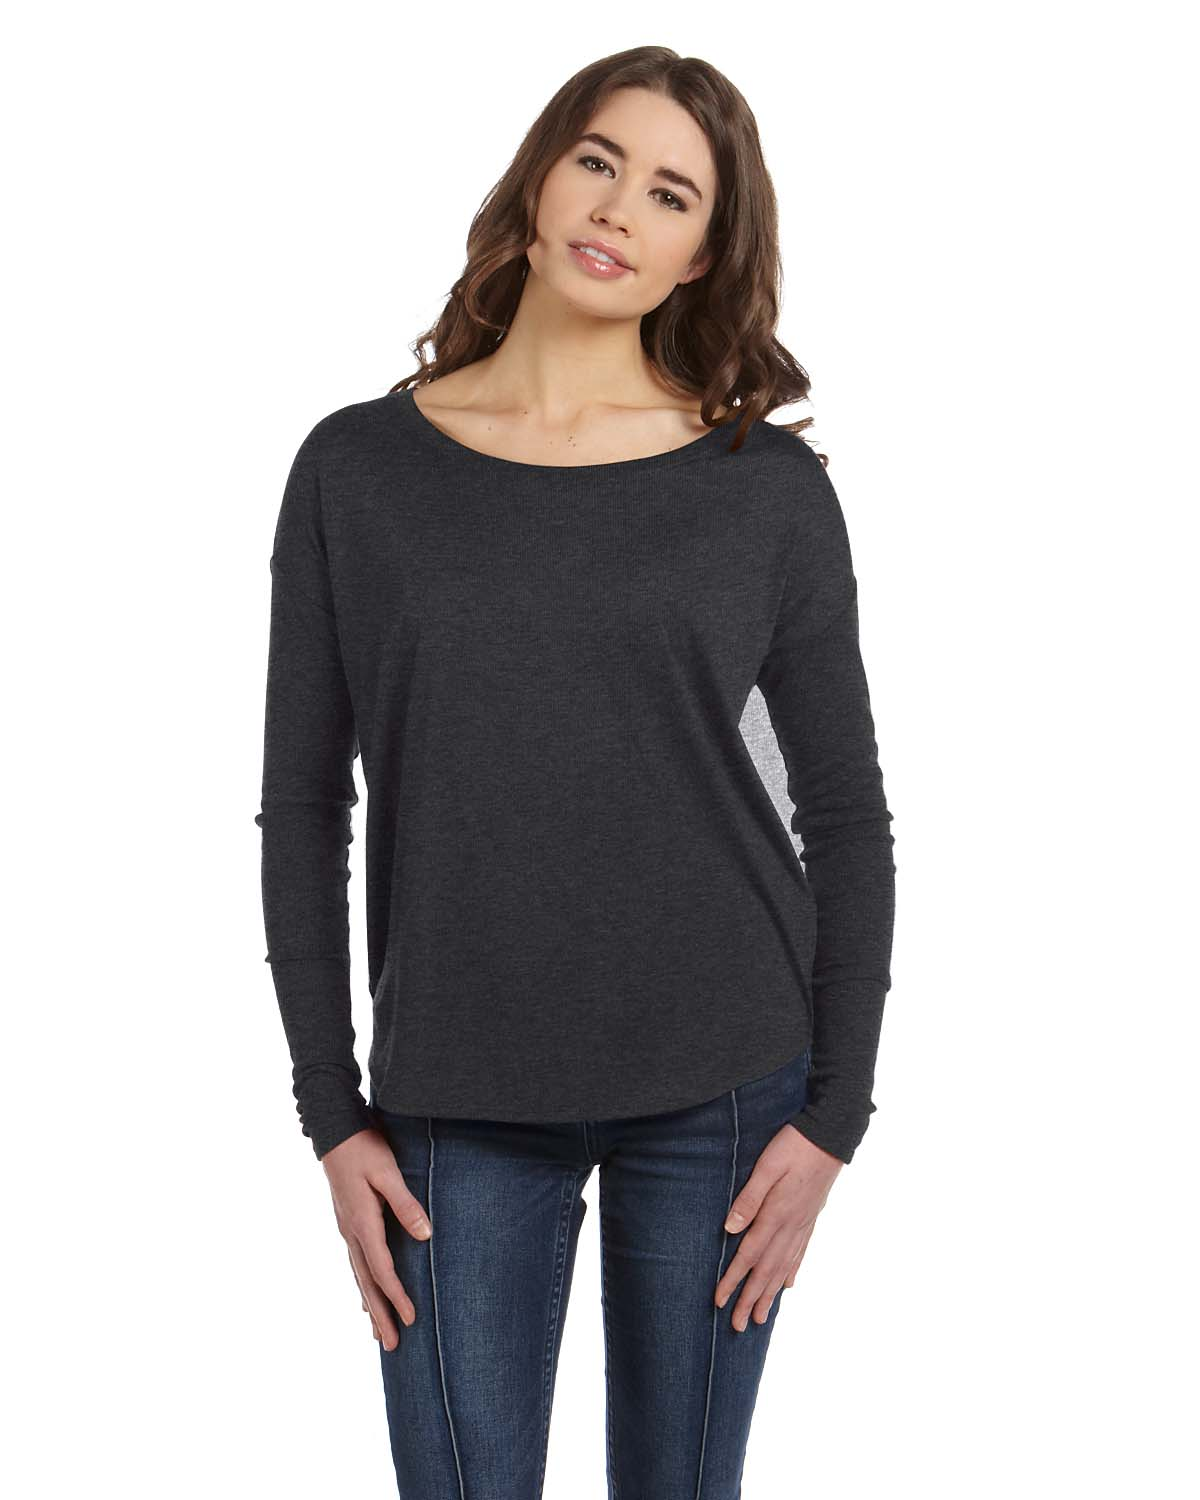 Bella Ladies Flowy Long-Sleeve T-Shirt With 2x1 Sleeves